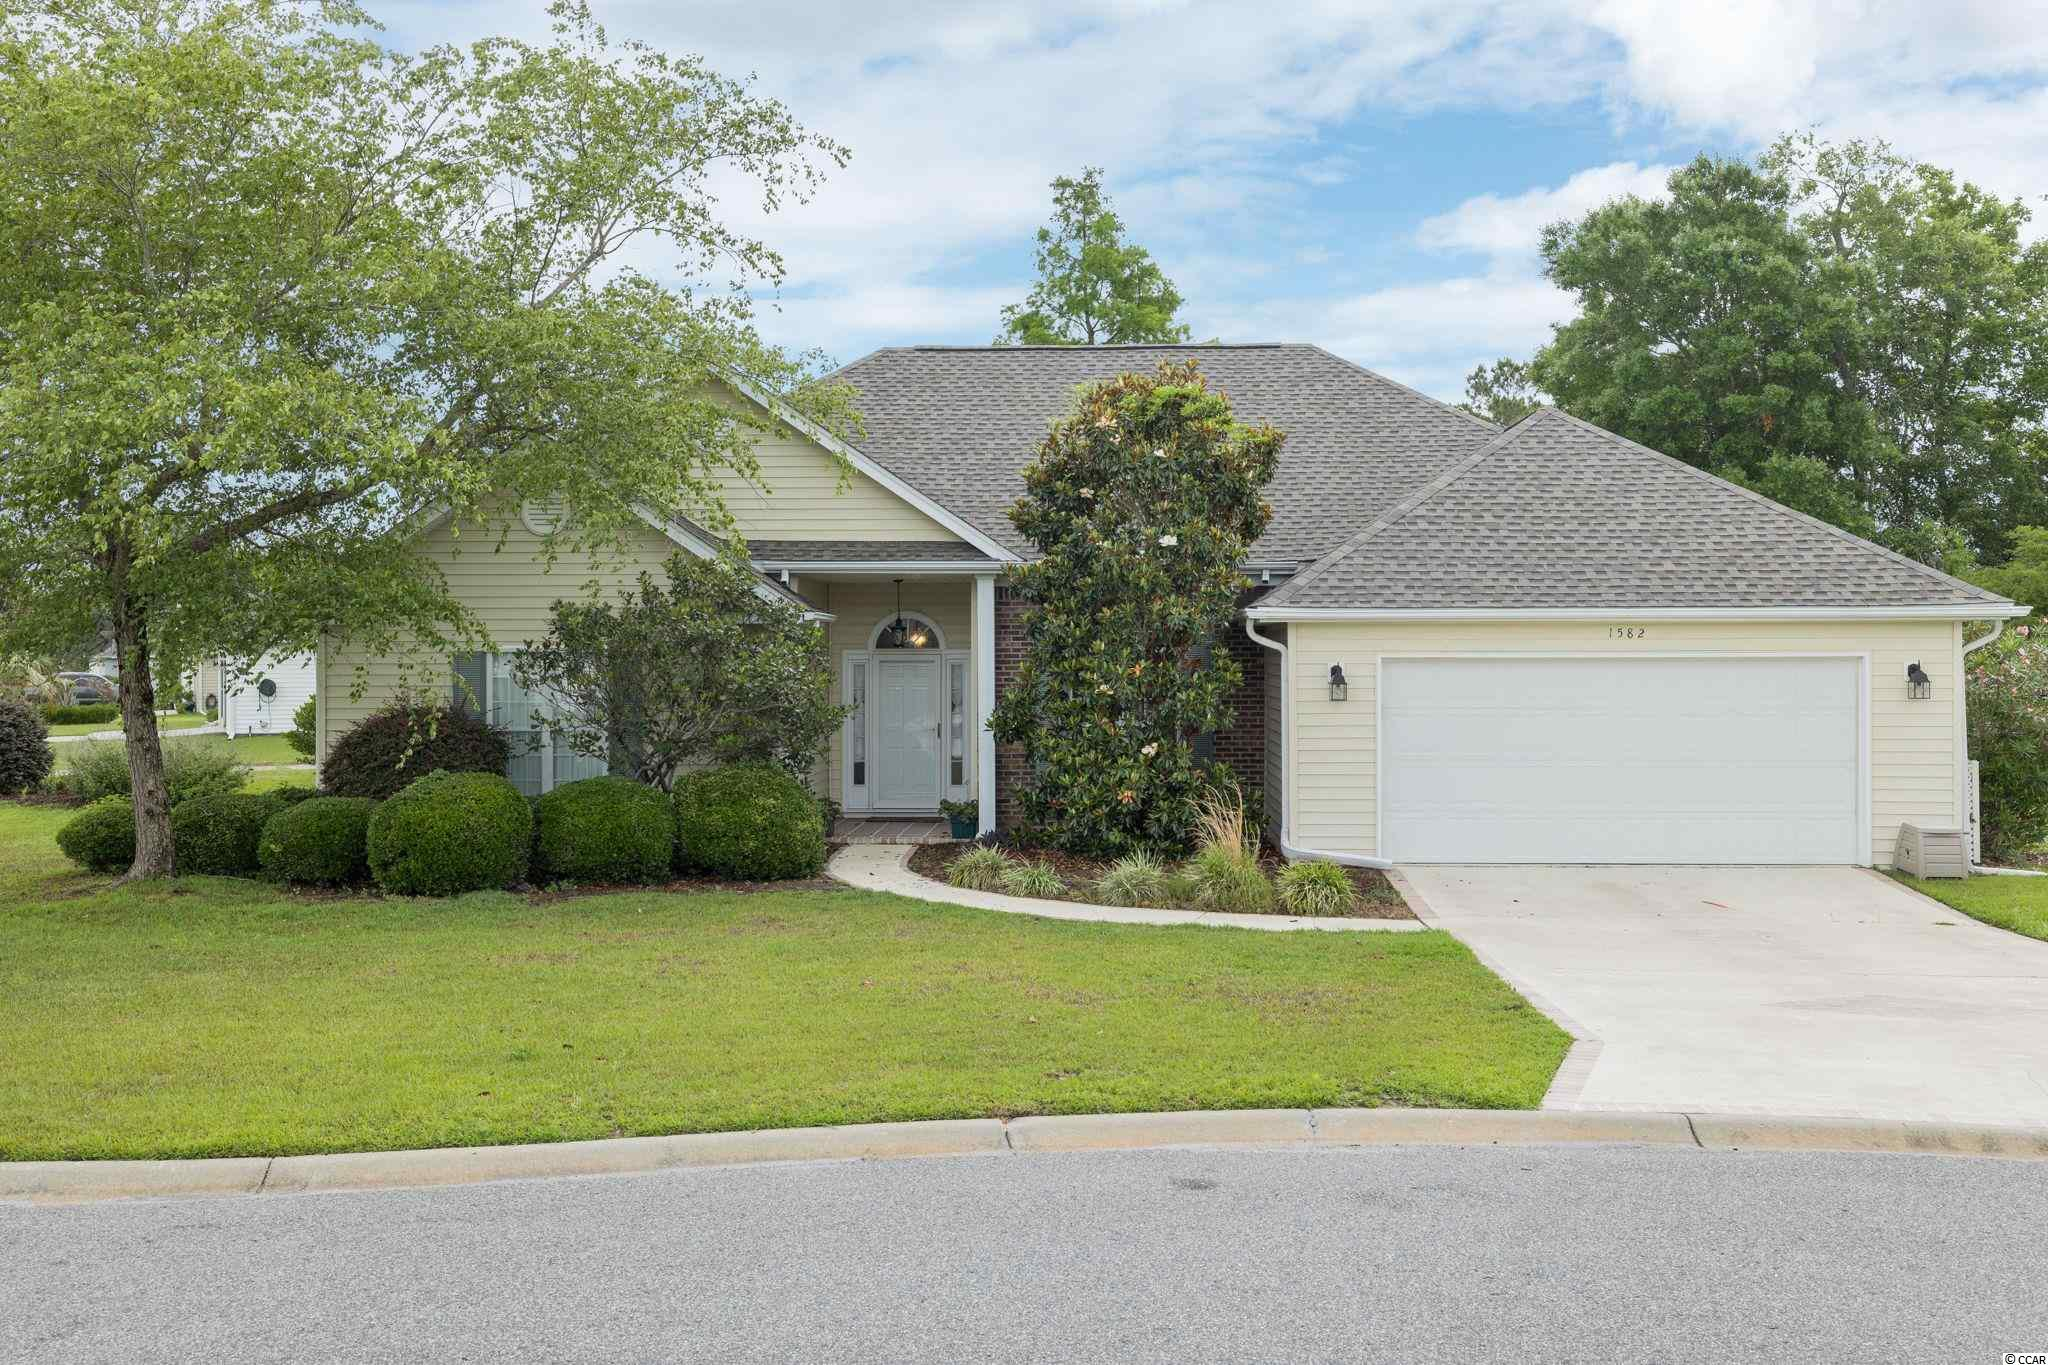 Welcome home to this well maintained home in the neighborhood of Southwood in Surfside Beach, South Carolina. This home has all 3 bedrooms and 2.5 bathrooms on ONE LEVEL and is a corner lot! Situated on a corner lot in a cul-de-sac off of Heathmuir Drive there is curb appeal and mature landscaping in the front! There is an extended painted driveway that leads to the 2 car garage and walkway to the front door. Walkthrough the front door and have your formal dining area on the right and an open living room with vaulted ceilings. The living room opens to a beautiful Carolina Room with tile floors, a vaulted ceiling, ceiling fan, easy breeze windows and a door that leads to the outside patio space. Two bedrooms with ceiling fans are up front to the left and they share a bathroom. The owners' suite is on the first floor and also has a tray ceiling, a ceiling fan, the option or a shower or bath, and a walk-in closet. The kitchen features plenty of upgraded cabinets, counter space, a pantry, ceramic tile floor, breakfast bar, and a dining nook. The kitchen overlooks a popular living area for entertaining that has a fireplace, vaulted ceilings, a ceiling fan, custom built-ins and has a convenient half bath. The laundry room has separation between the garage and kitchen and features extra cabinets. There is a sink in the garage, detachable hurricane shutters, gutters, a NEW ROOF in March 2021, irrigation and is getting a brand new stainless steel electric range and microwave. Located in Southwood in Surfside, this home is conveniently located to an option of beaches, airport, easy access to Highway 17Business or Bypass, Hwy 544, restaurants, stores, and golf courses. Southwood has a low HOA and has two neighborhood pools.Schedule your showing today!